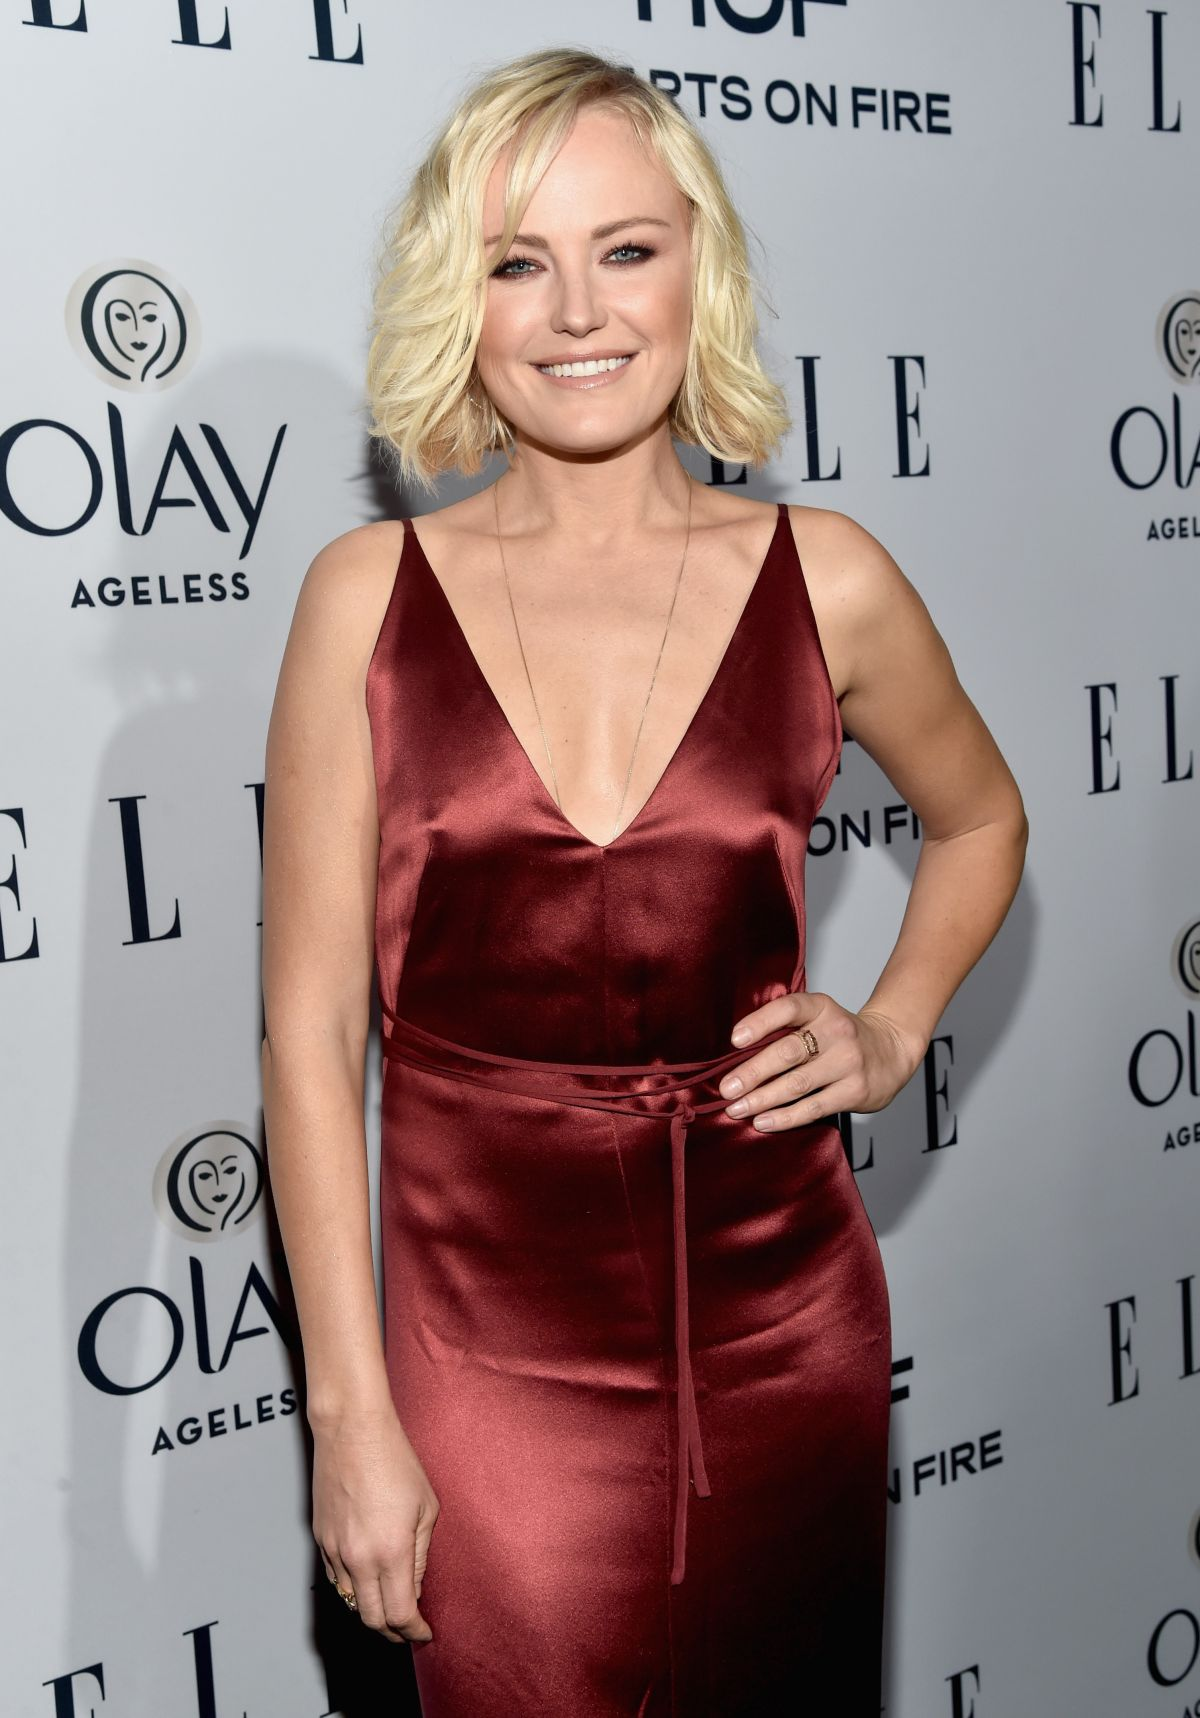 MALIN AKERMAN at Elle